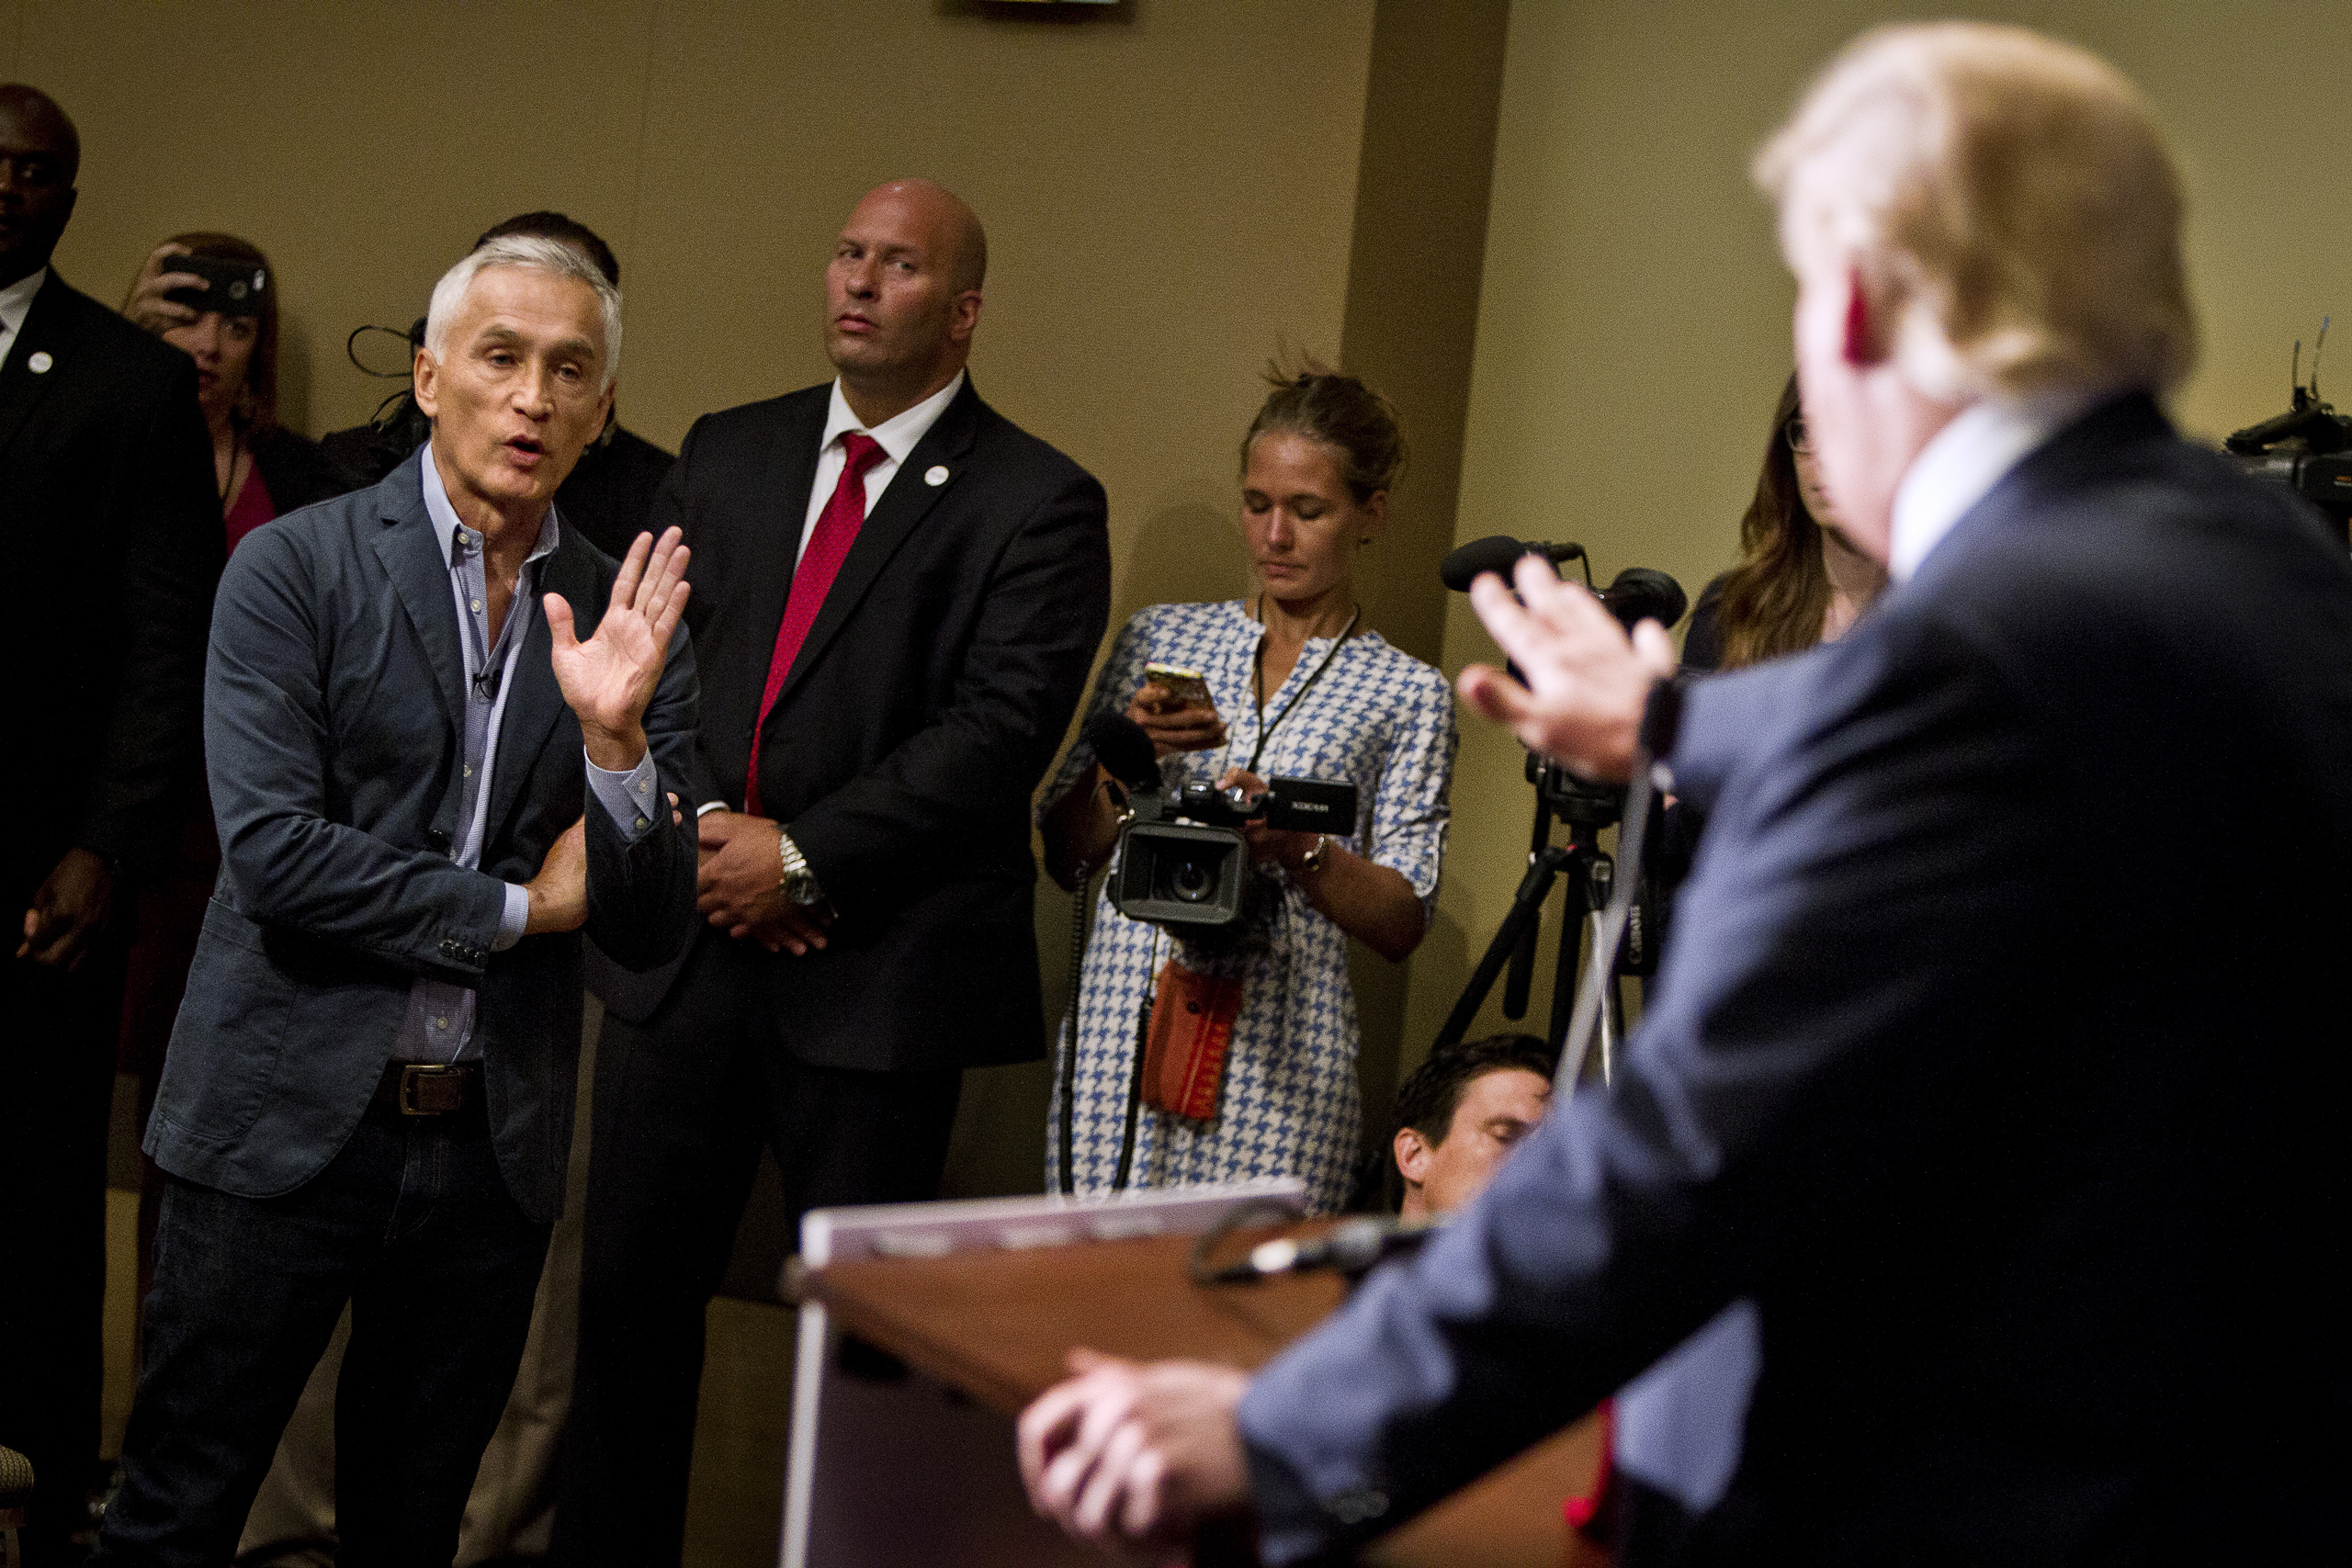 Jorge Ramos spars with then-Presidential candidate Donald Trump before his  Make America Great Again Rally  at the Grand River Center in Dubuque, Iowa, on Aug. 25, 2015.